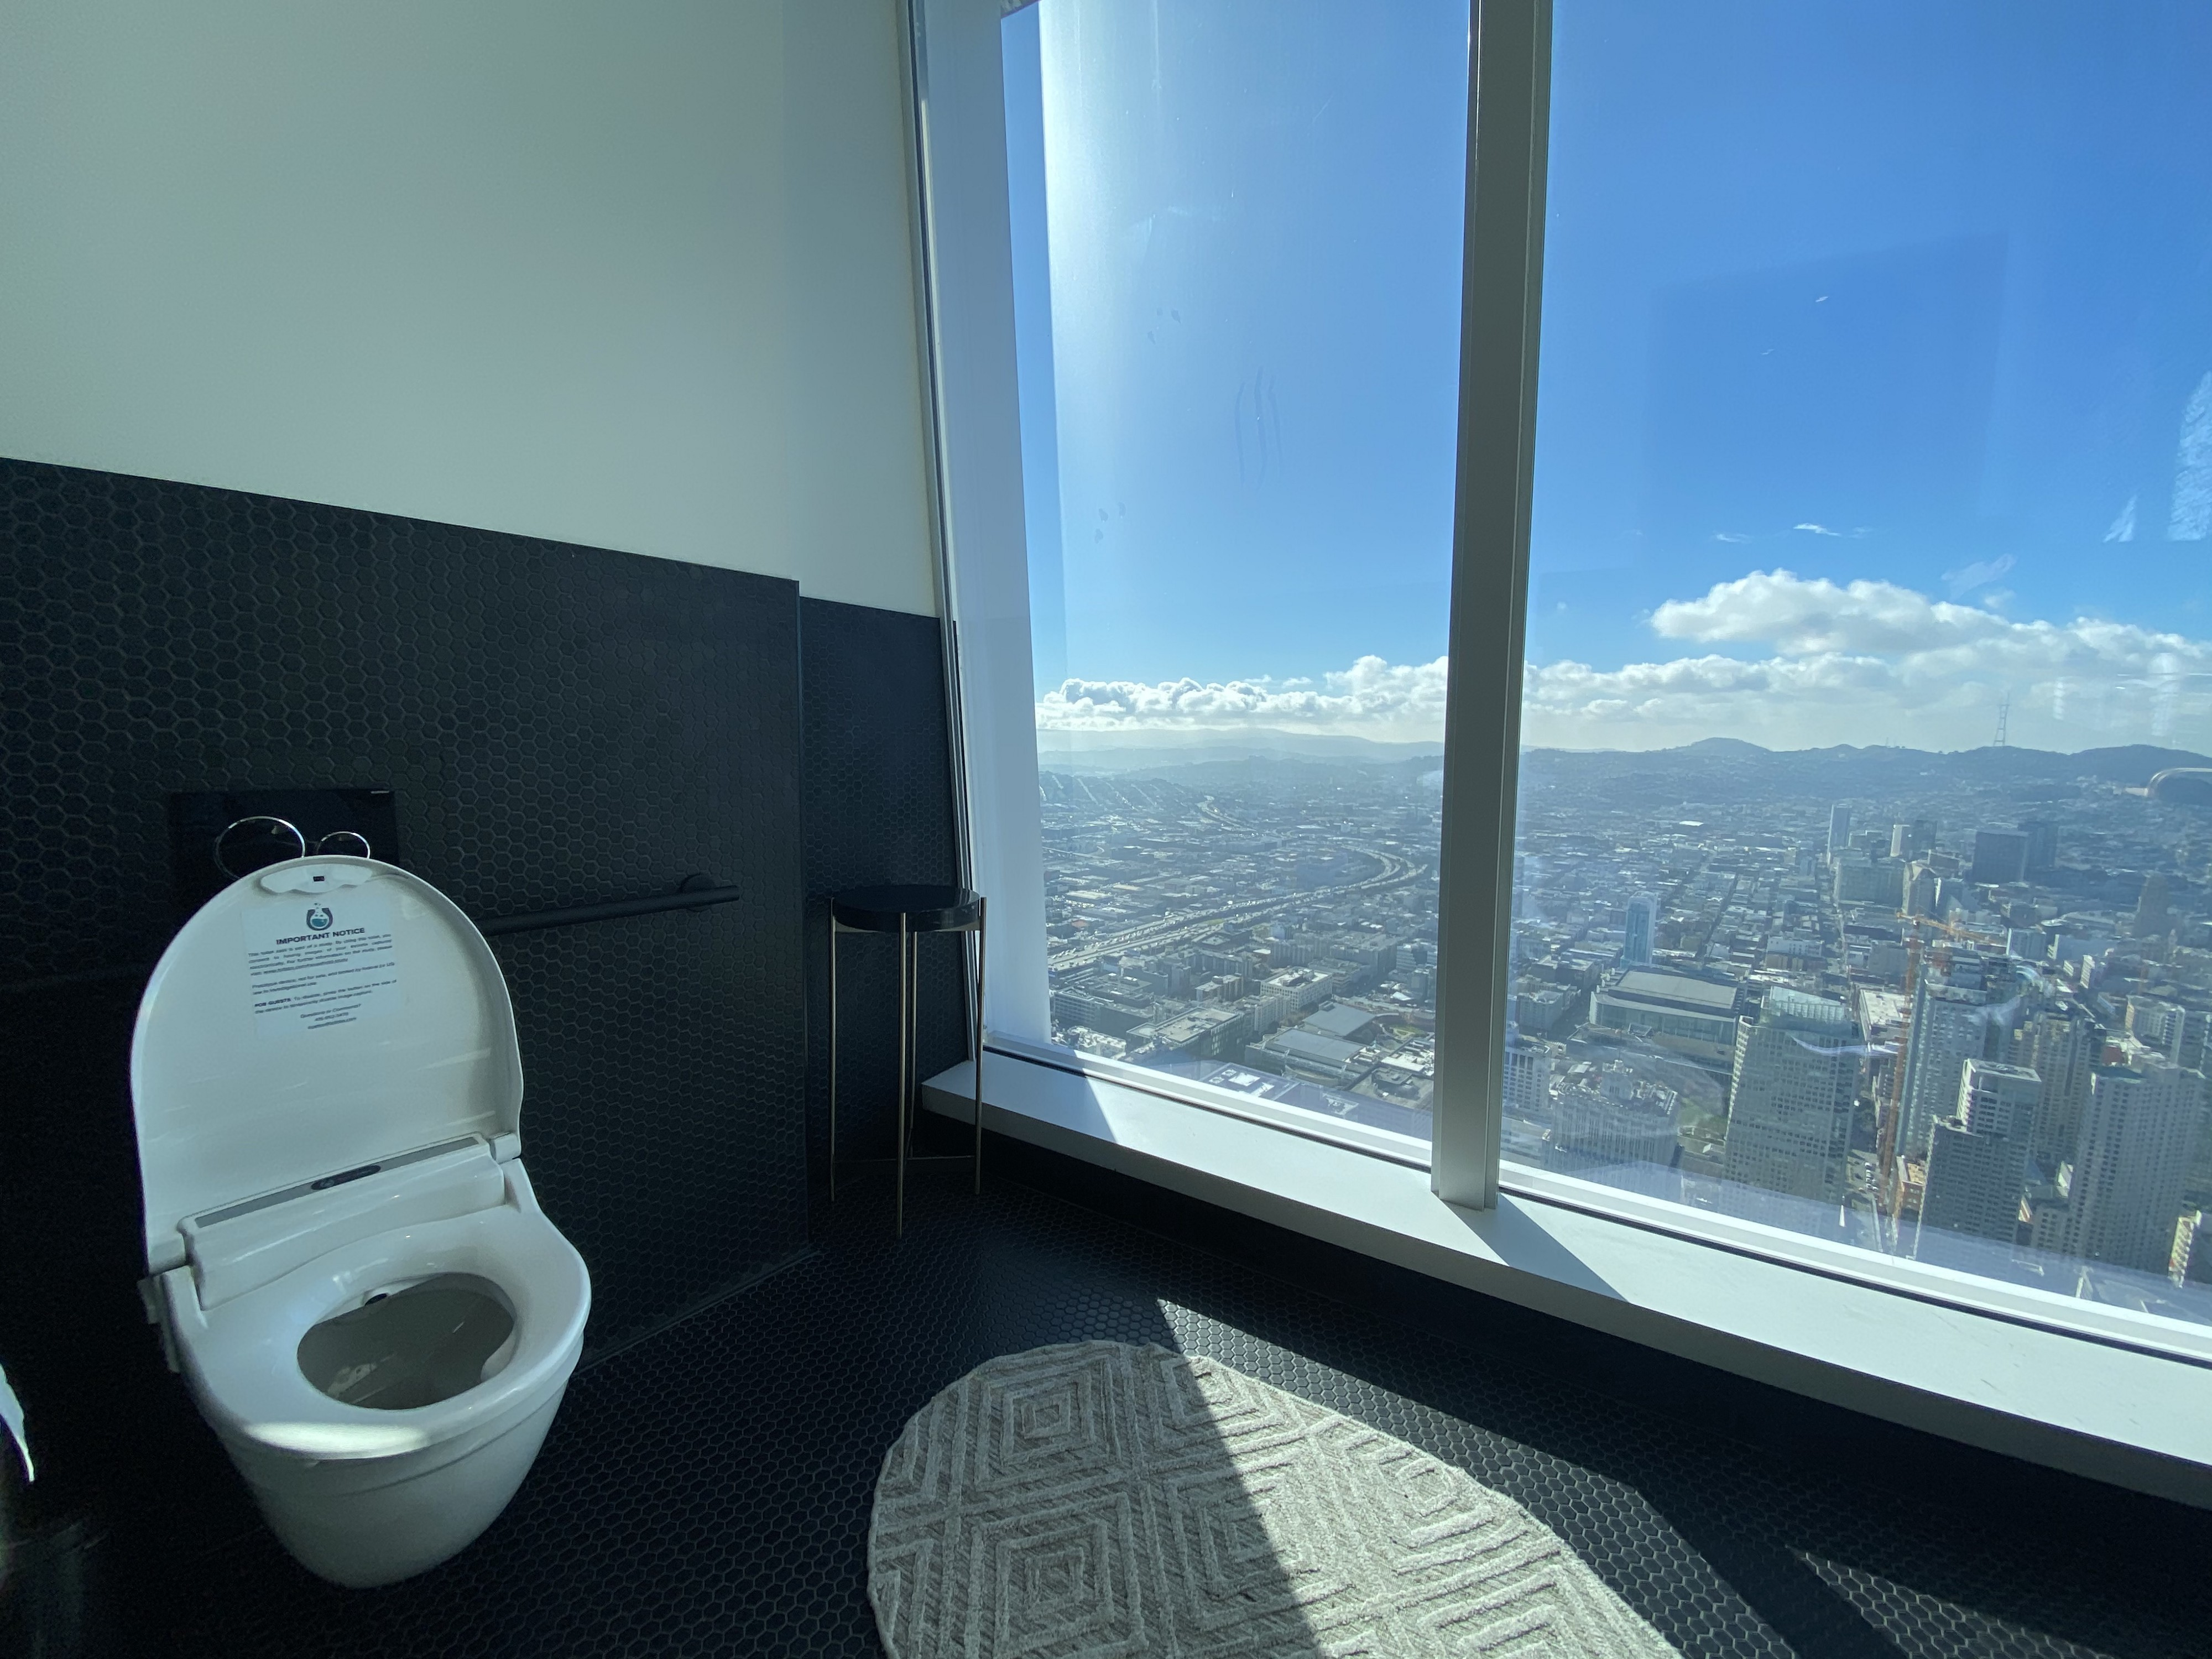 A photo of a smart toilet in a bathroom within a high-rise building overlooking the city.